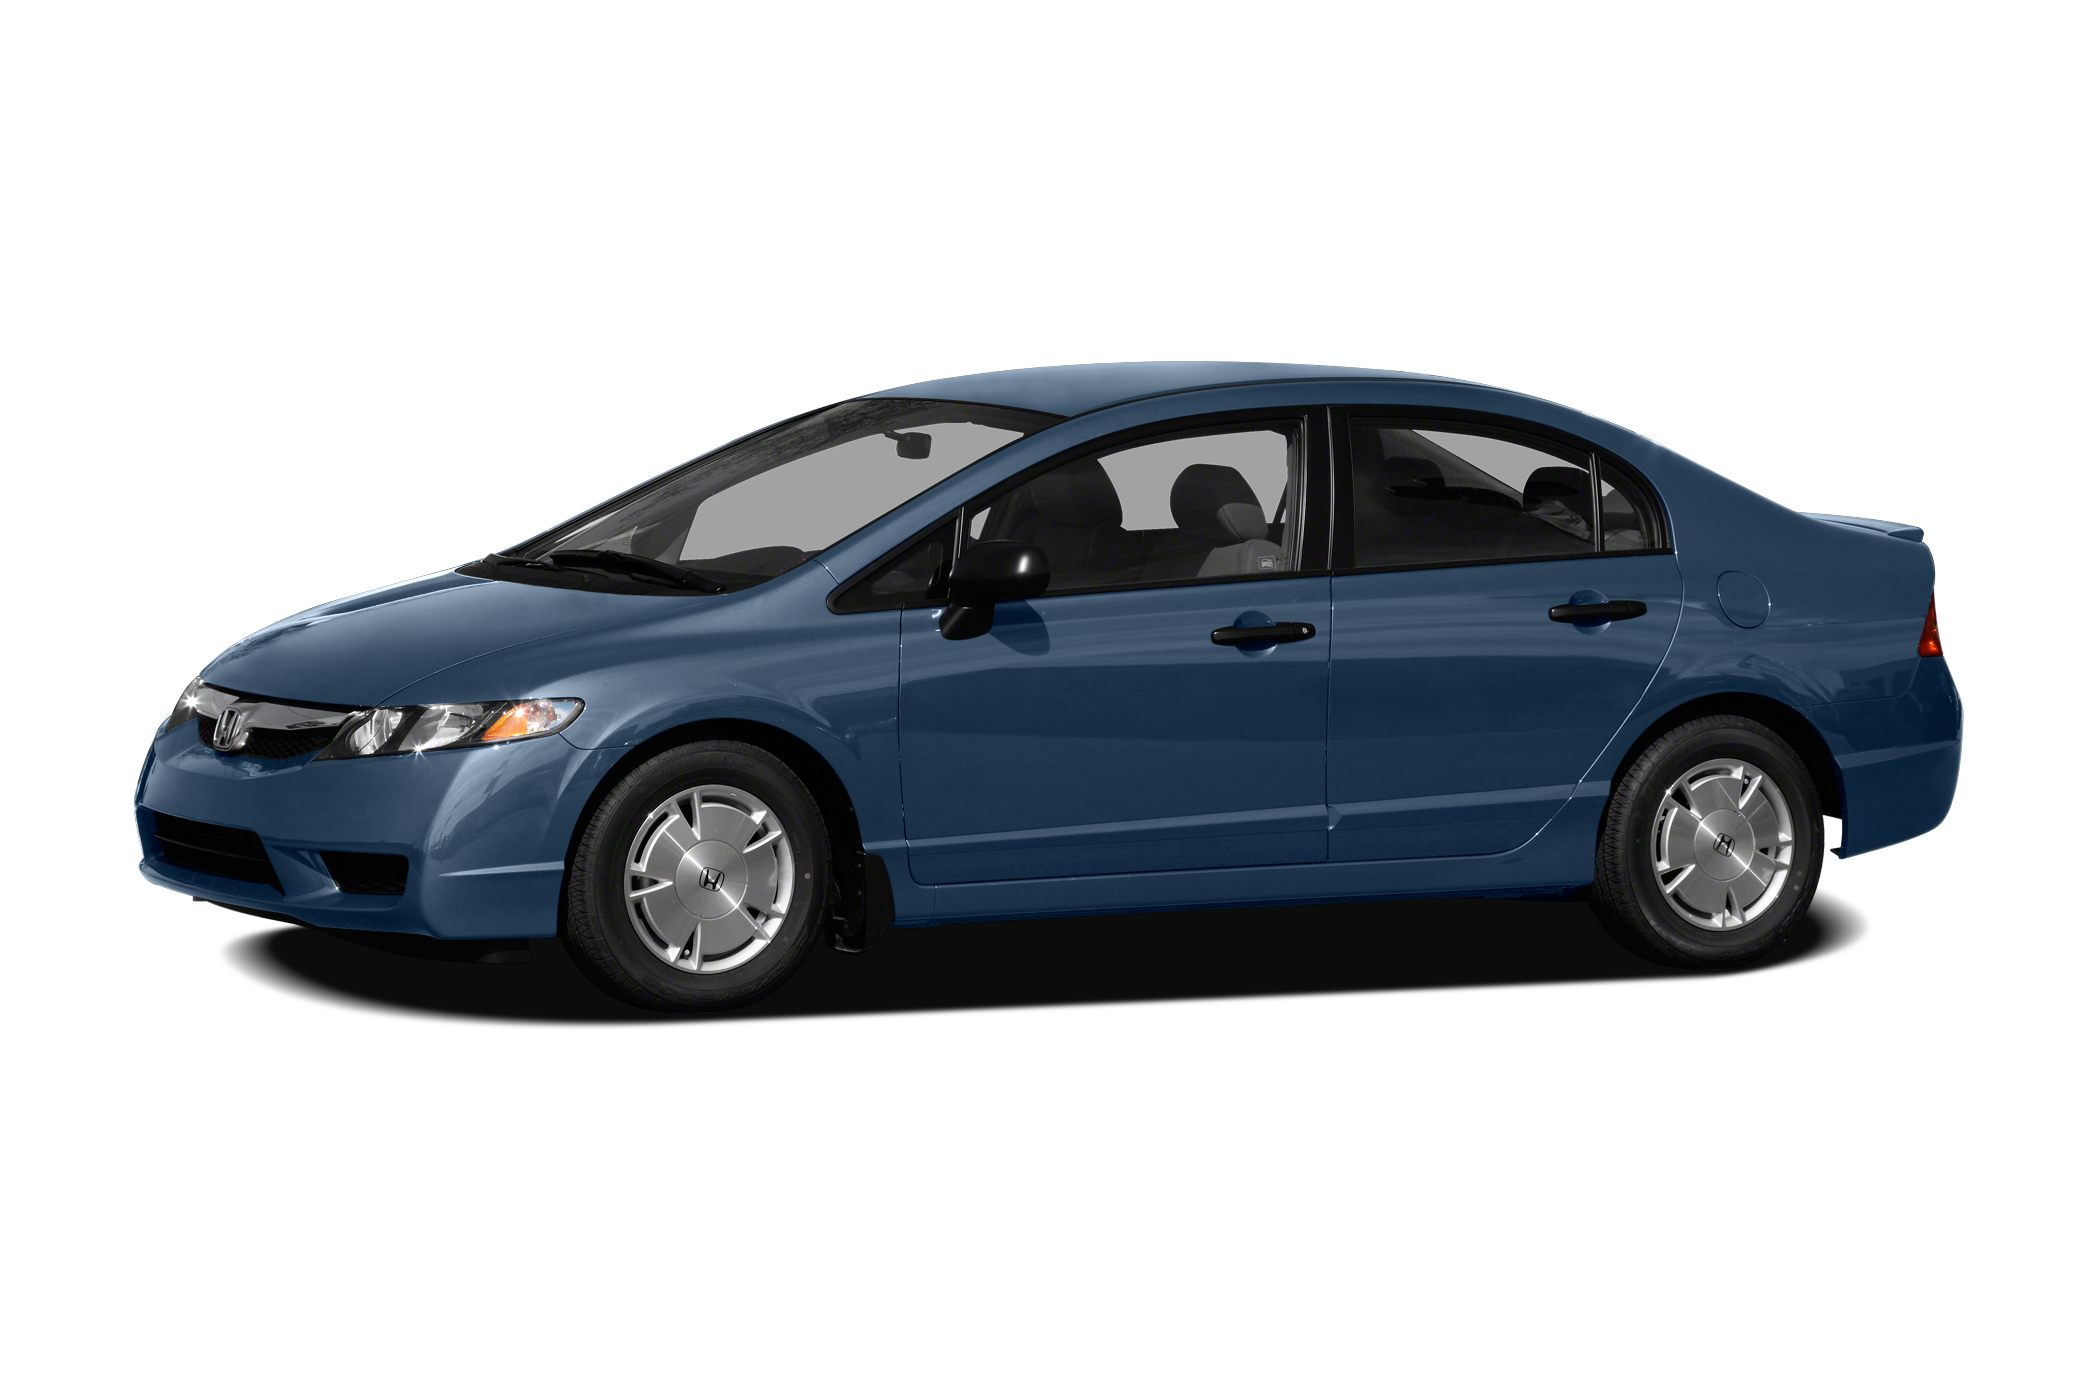 2017 Honda Civic Pricing And Specs